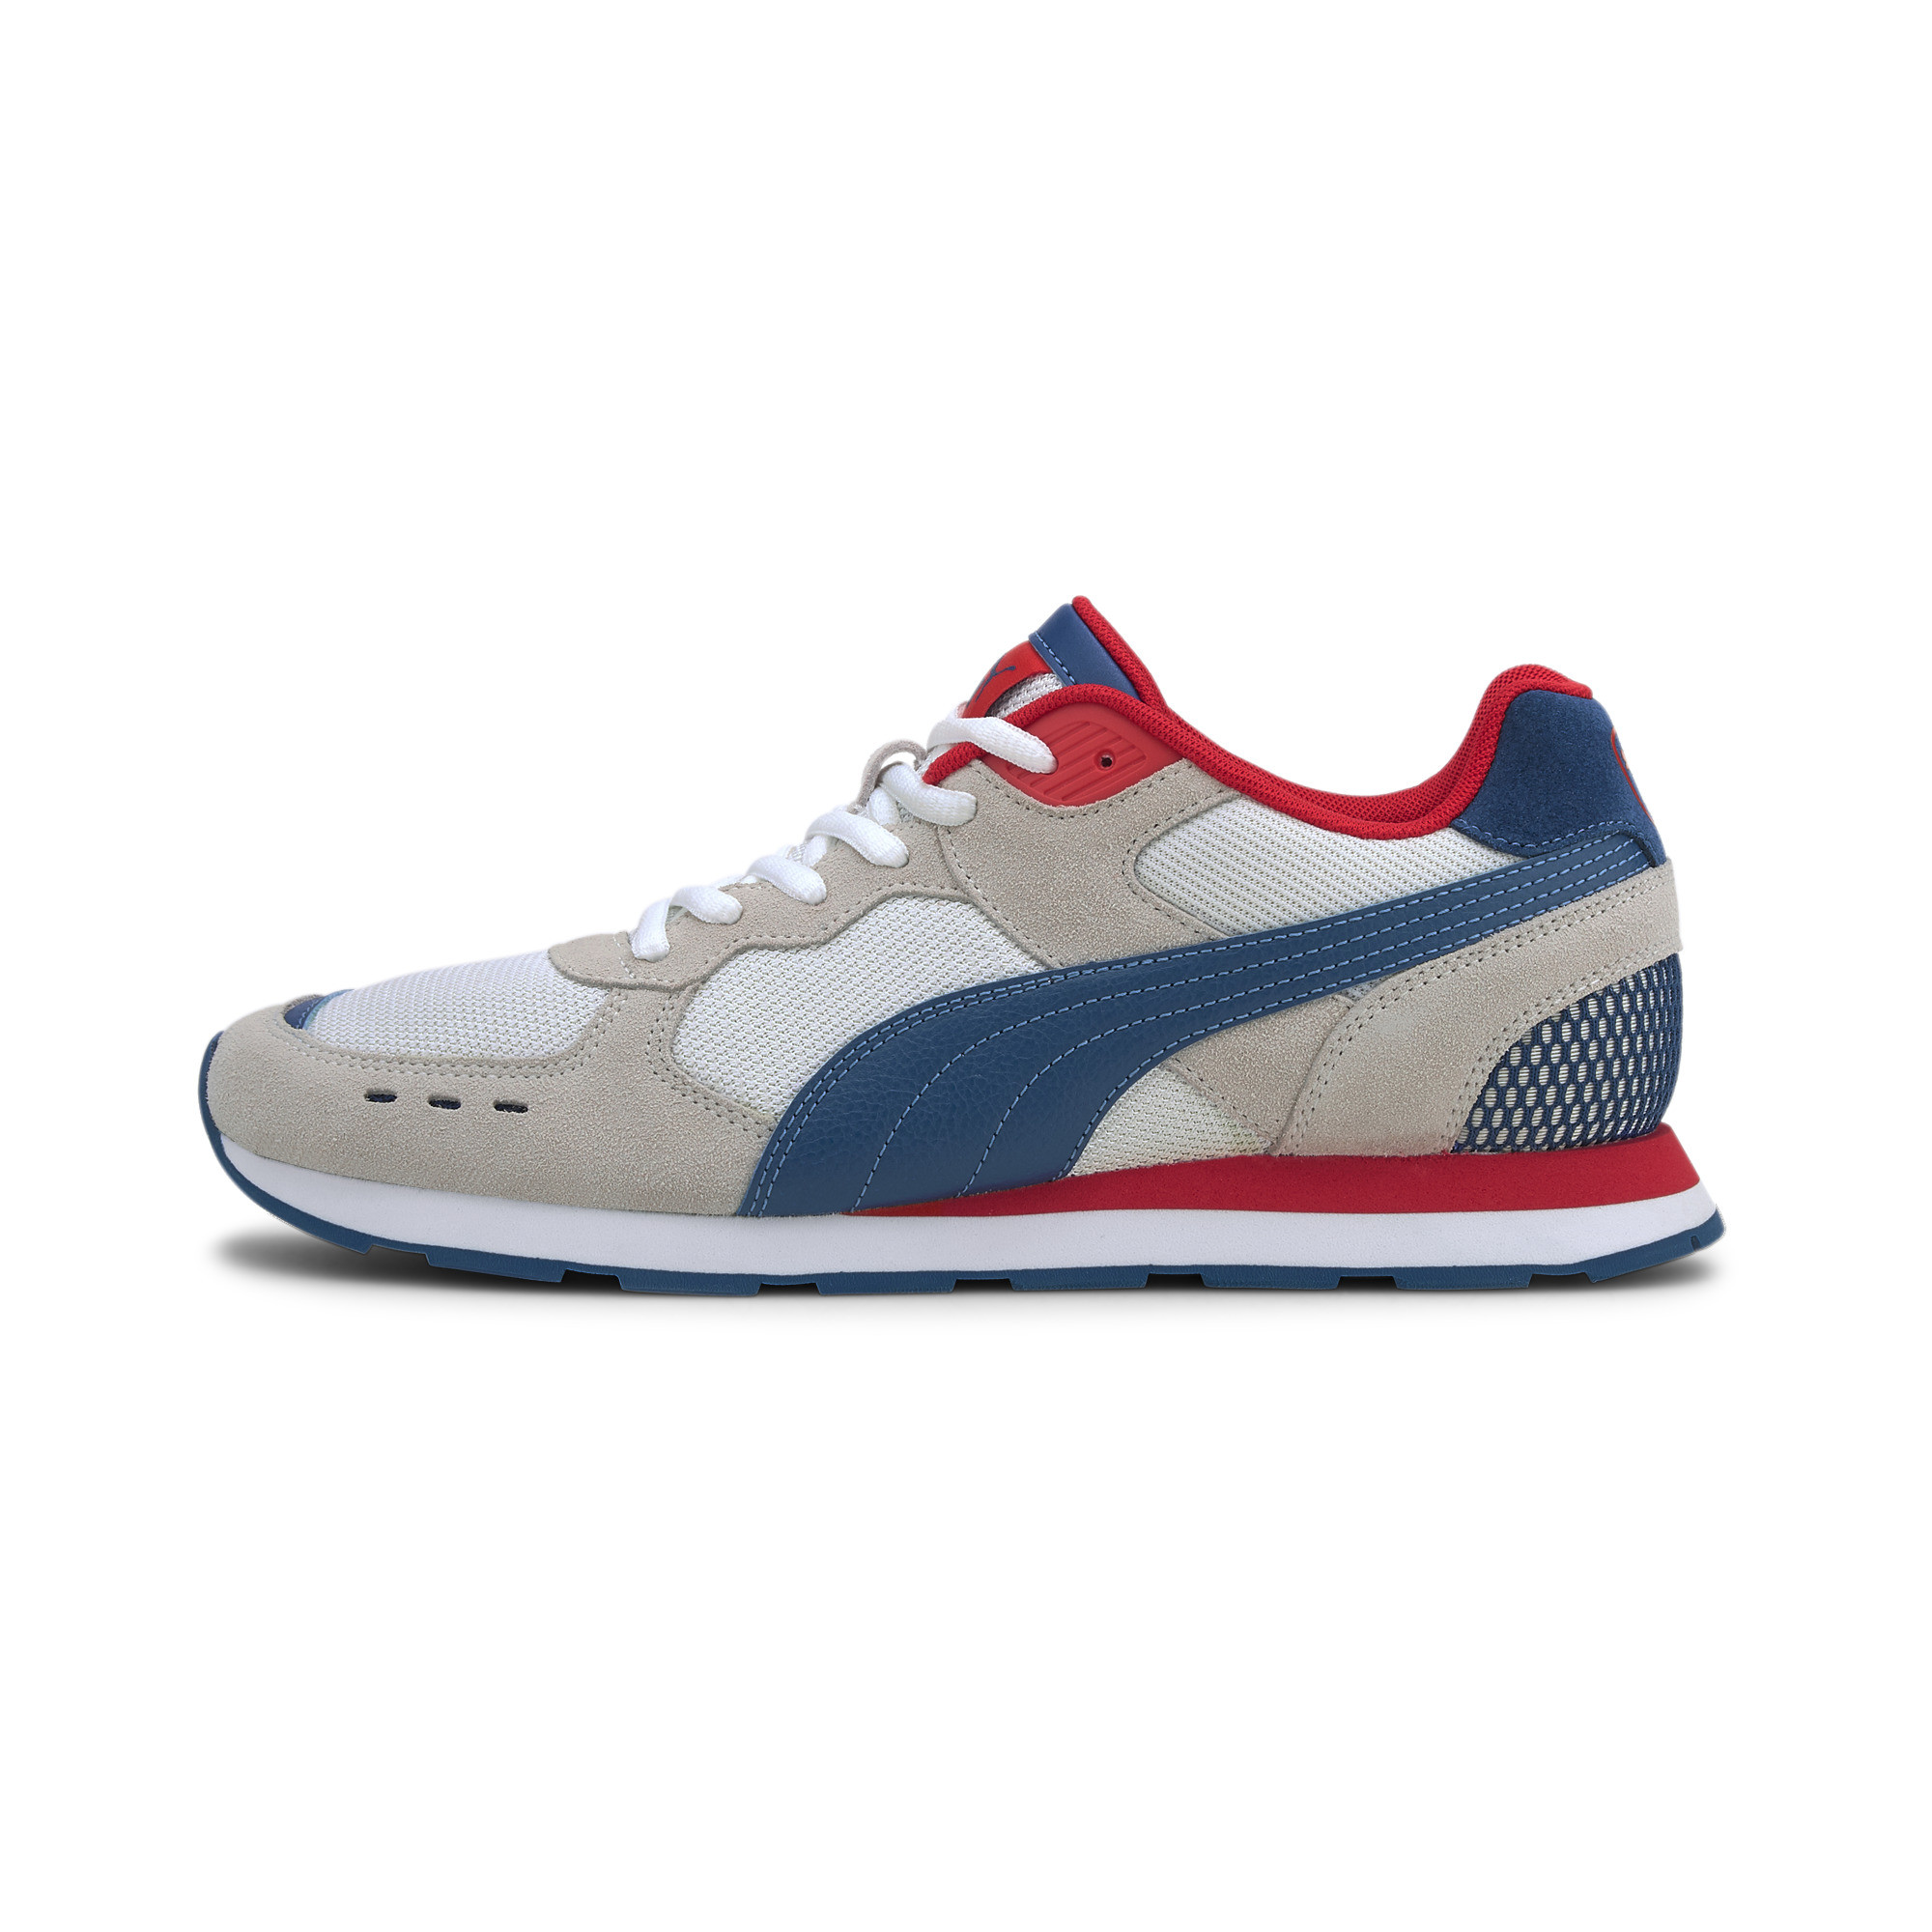 PUMA-Men-039-s-Vista-Sneakers thumbnail 45